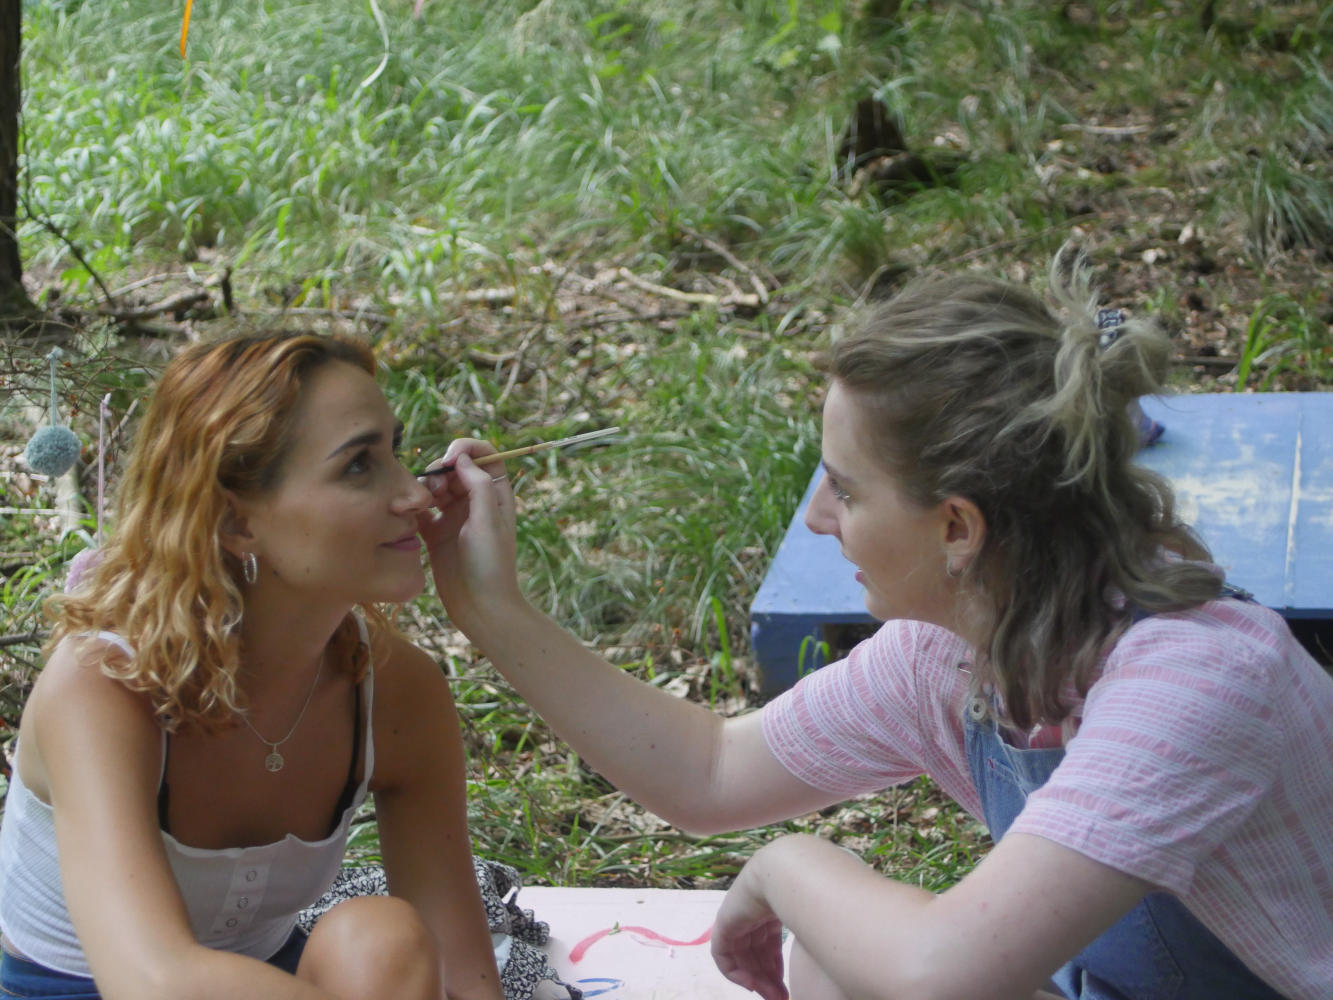 Behind the scenes image from short film Robyn of make up being applied on a film set